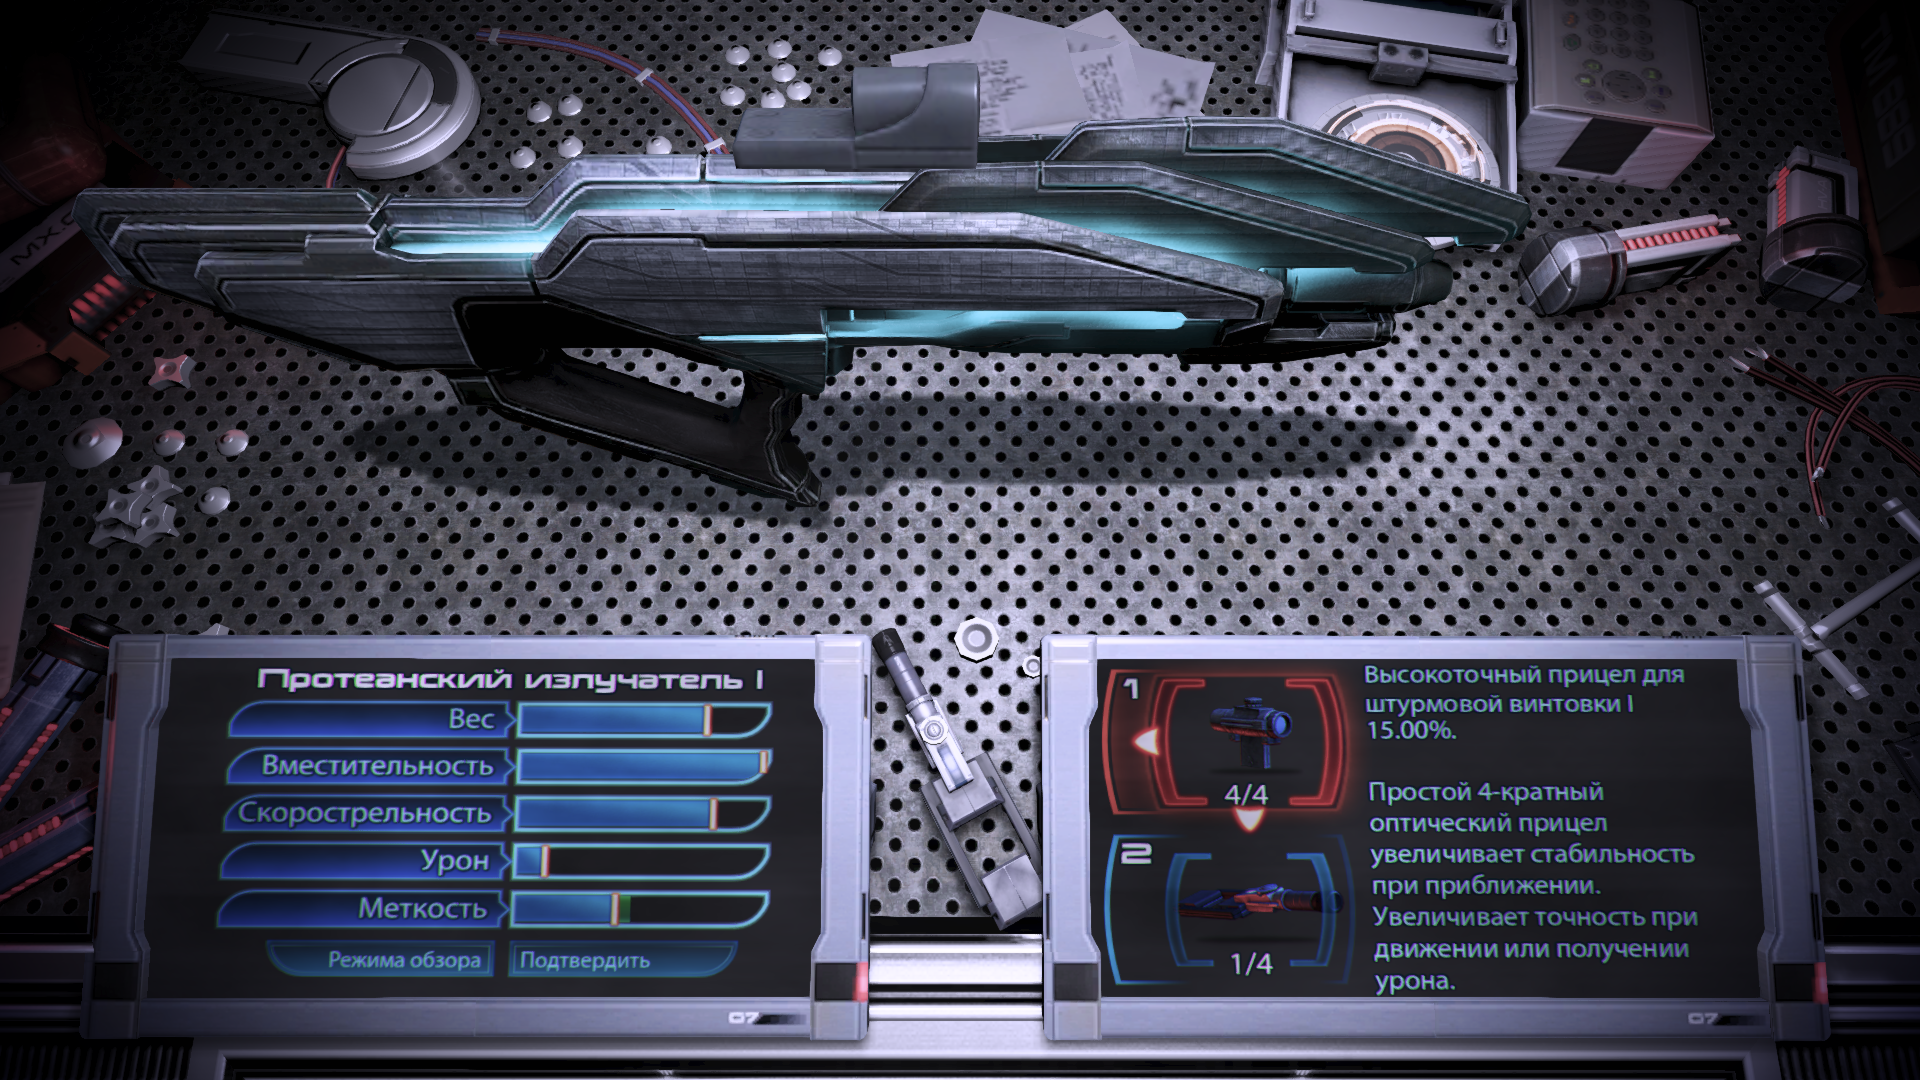 (XL) Was the Ending a Hallucination? - Indoctrination Theory Mark IV! - Page 4 674816-mass-effect-3-from-ashes-windows-screenshot-prothean-particle